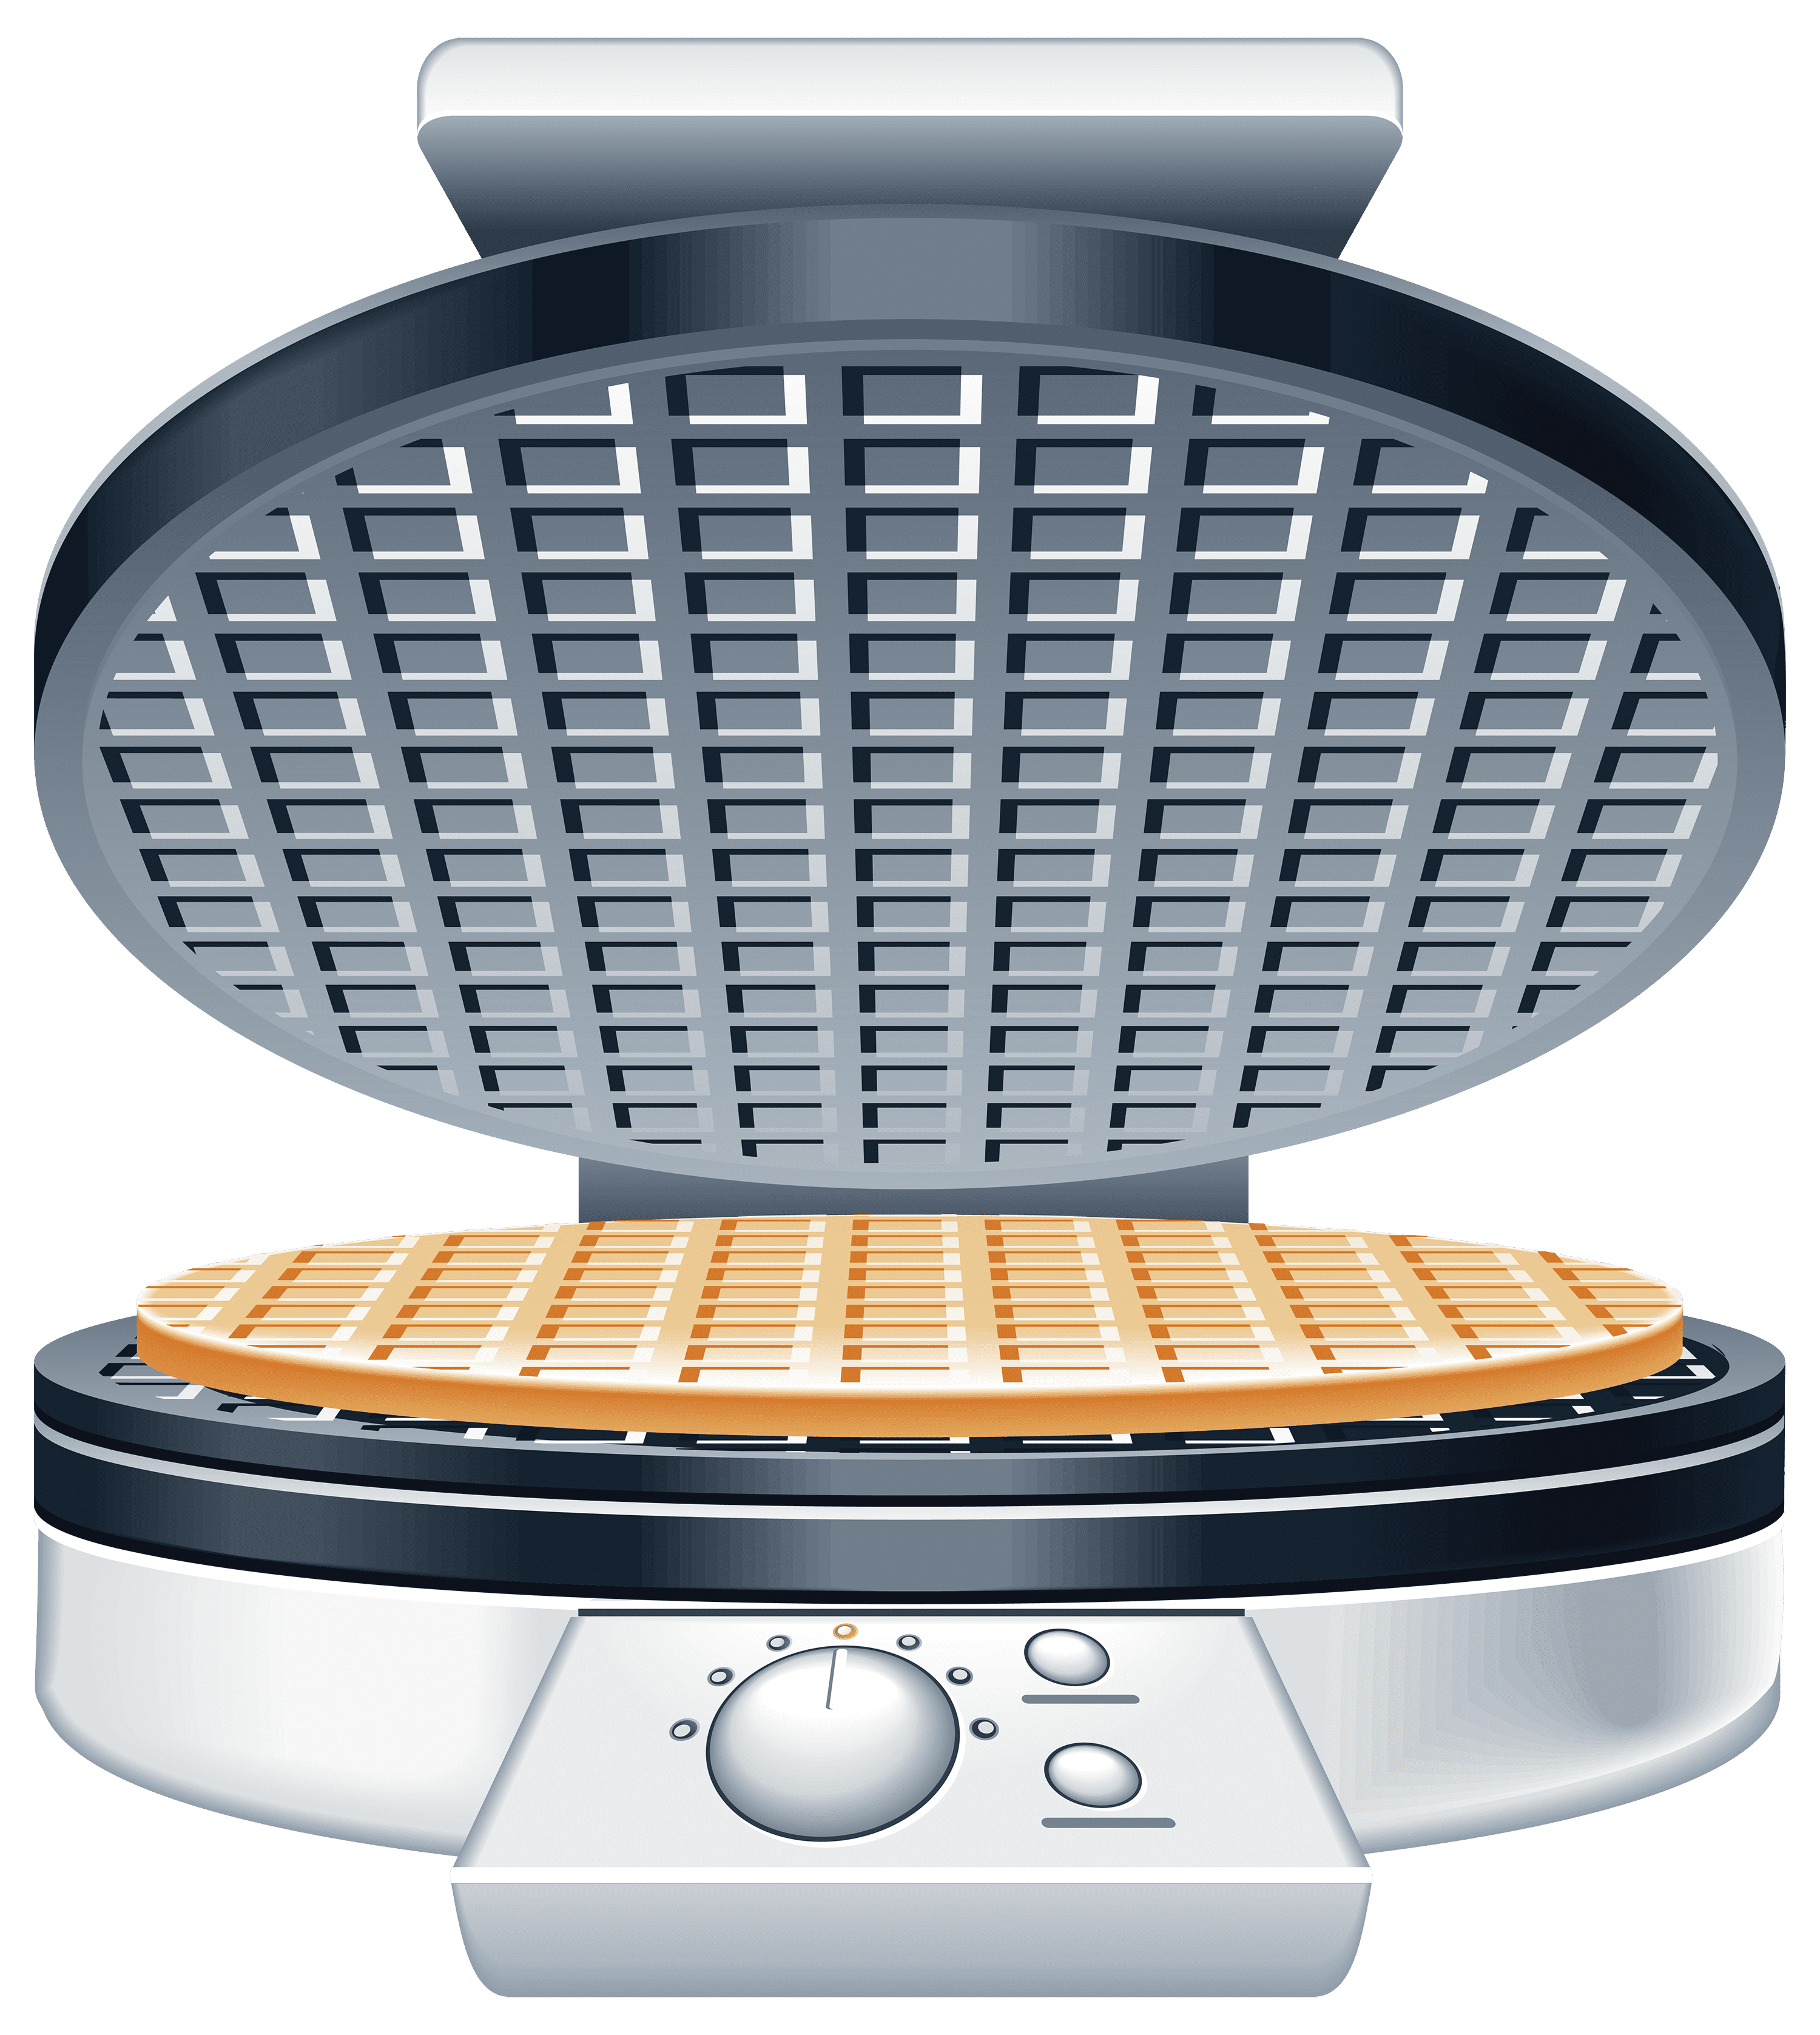 Waffle clipart high resolution. Maker png free images